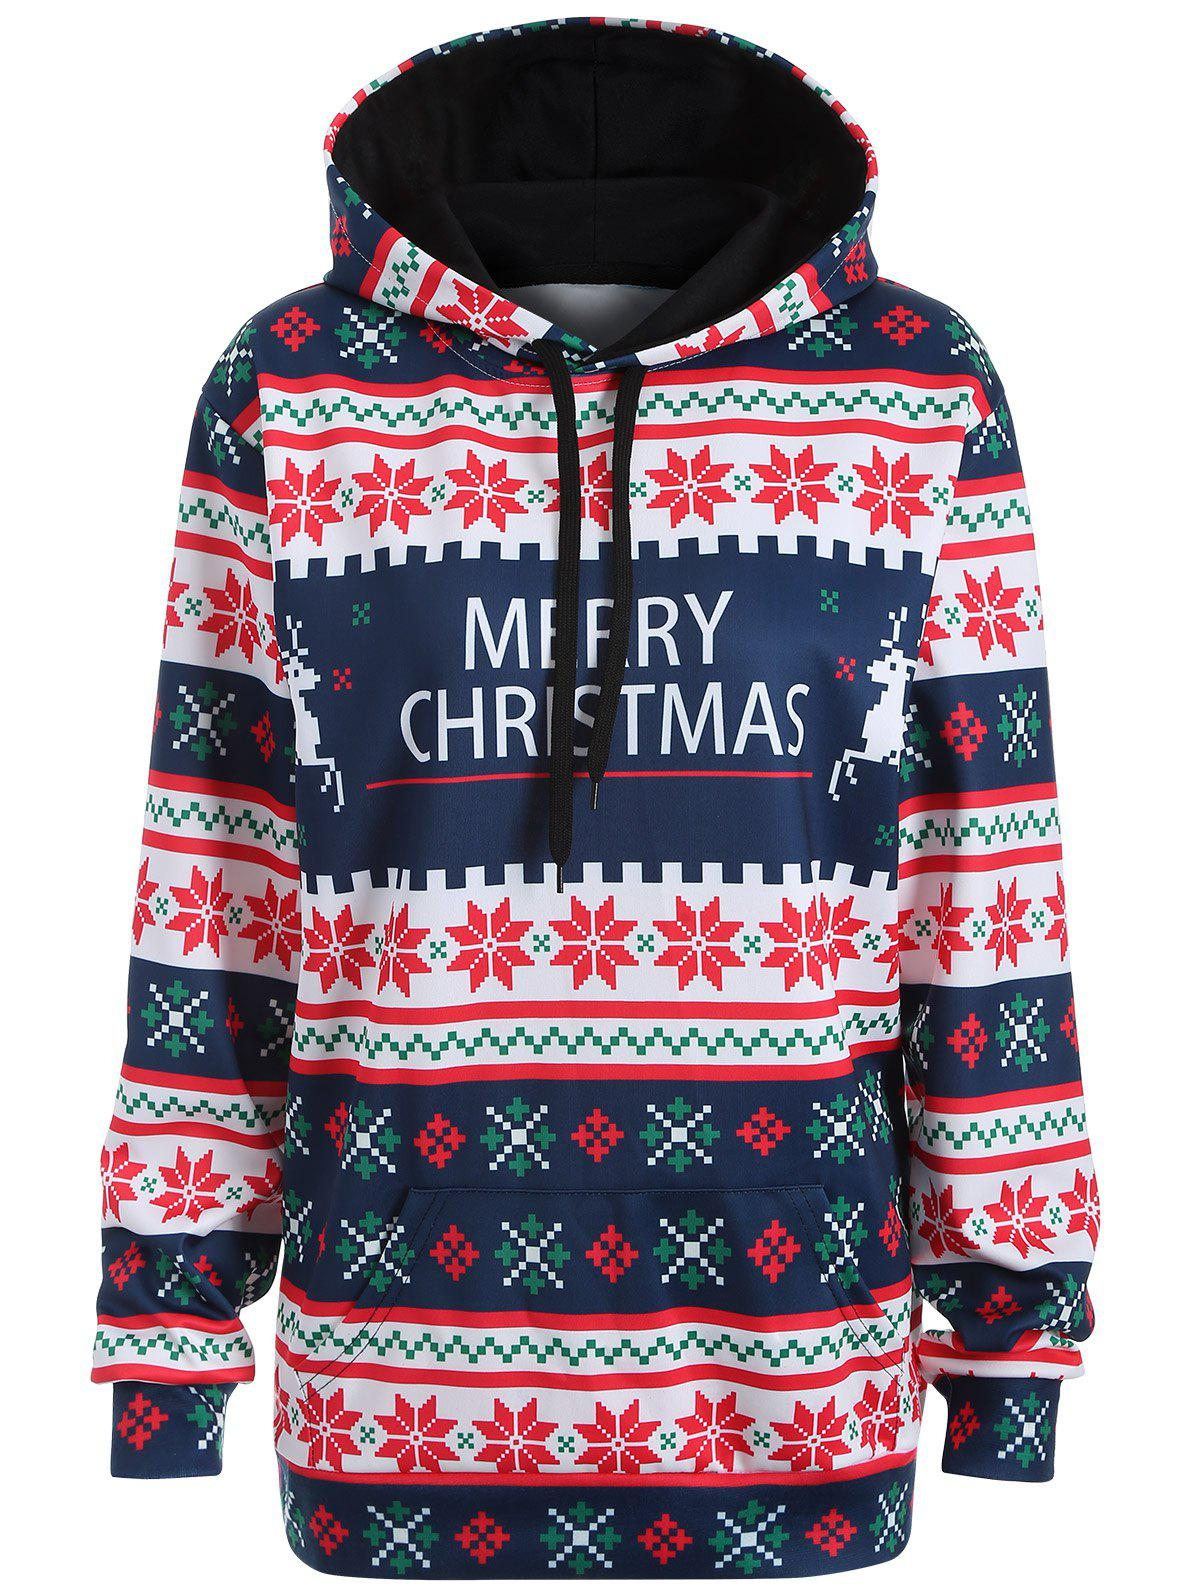 Plus Size Merry Christmas Snowflake Patterned HoodiesWOMEN<br><br>Size: 2XL; Color: PURPLISH BLUE; Material: Polyester; Shirt Length: Long; Sleeve Length: Full; Style: Casual; Pattern Style: Animal; Season: Fall,Spring; Weight: 0.234kg; Package Contents: 1 x Hoodie;